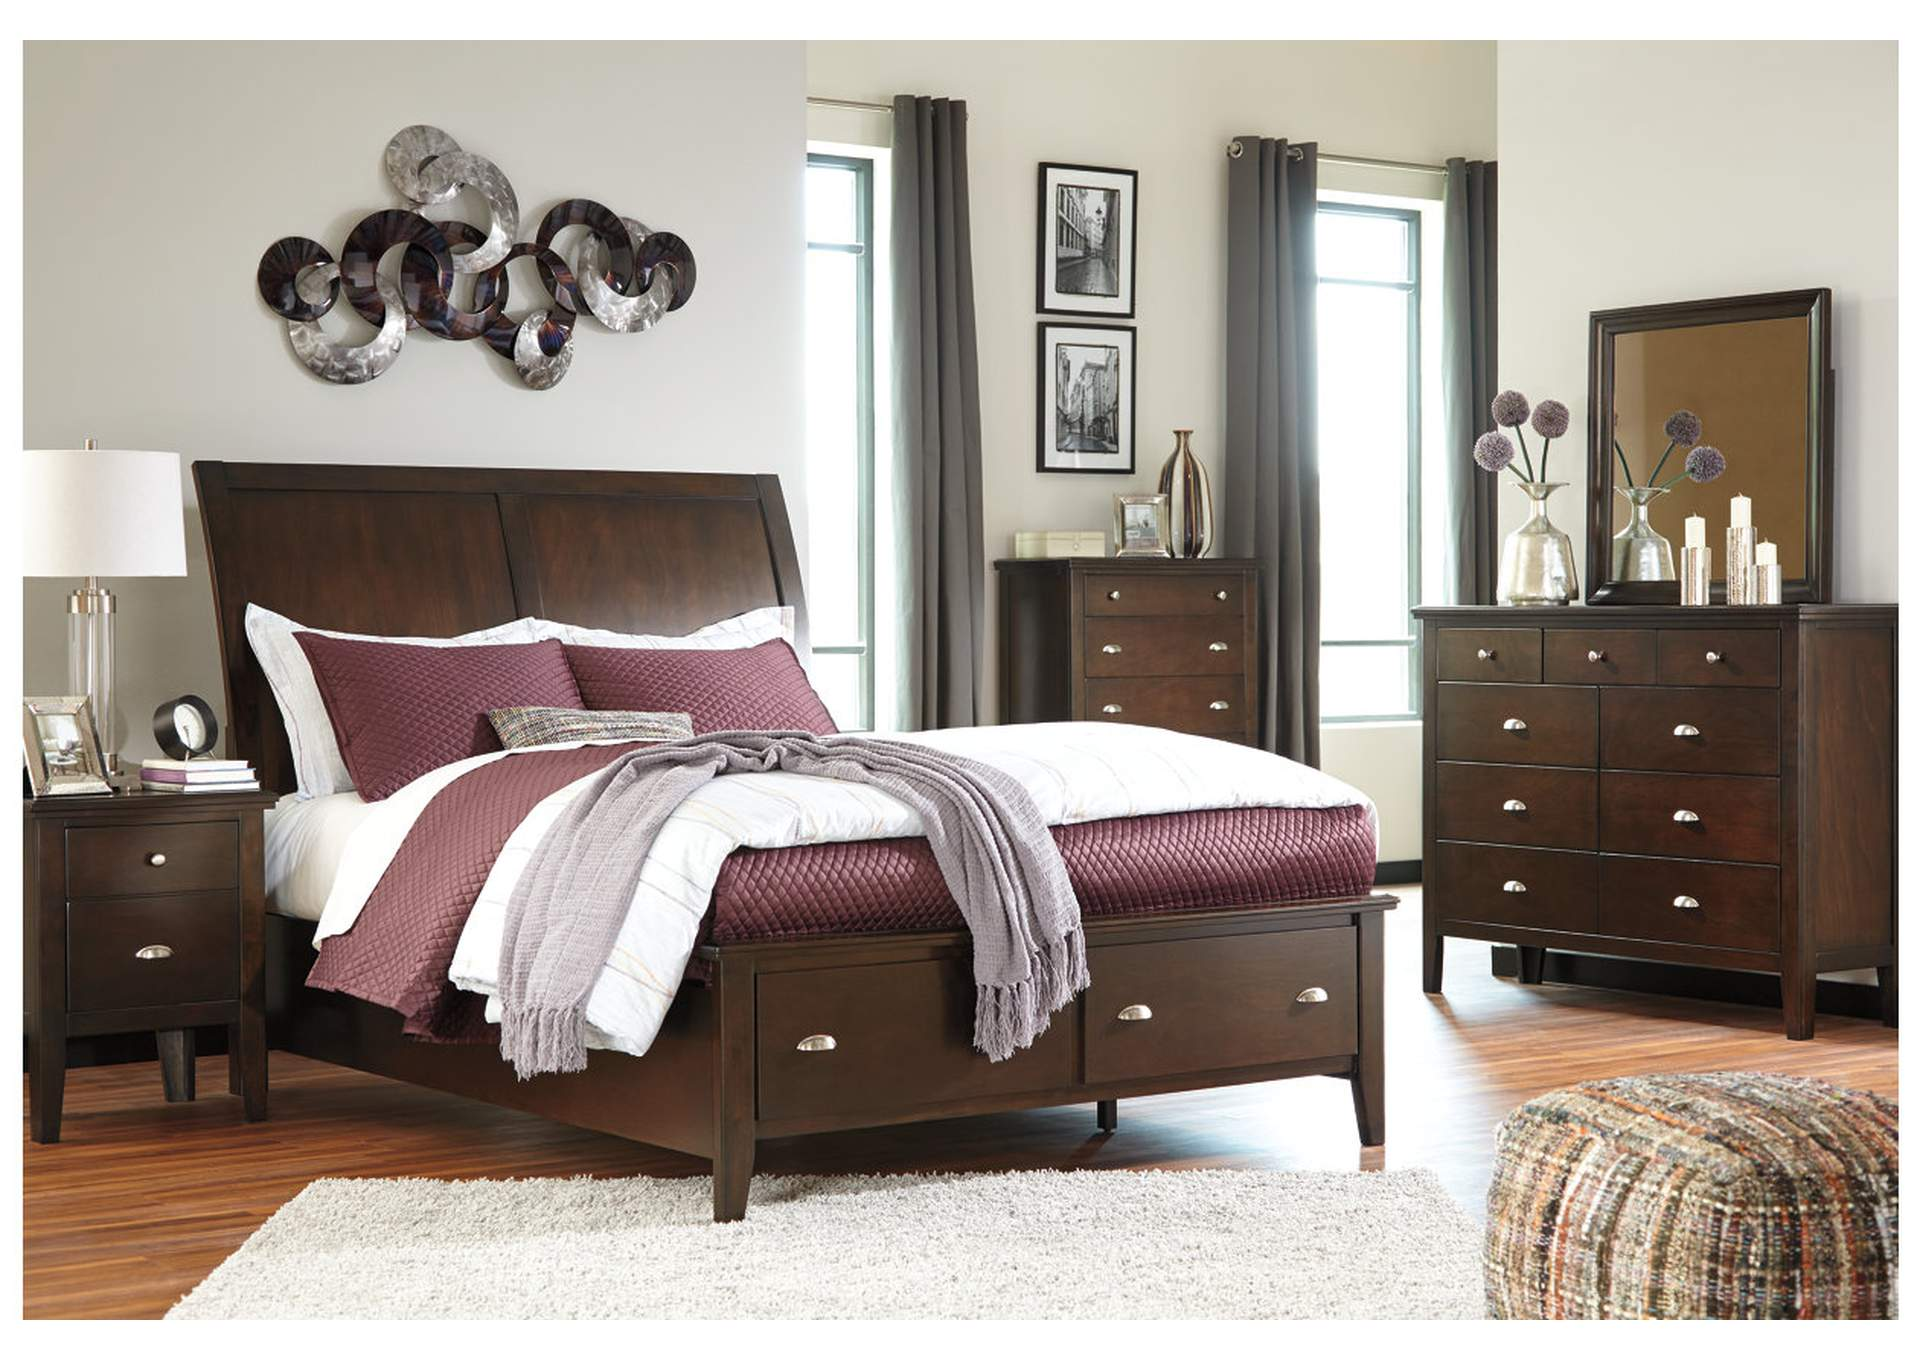 Evanburg Brown Queen Sleigh Storage Bed w/Dresser & Mirror,Signature Design By Ashley